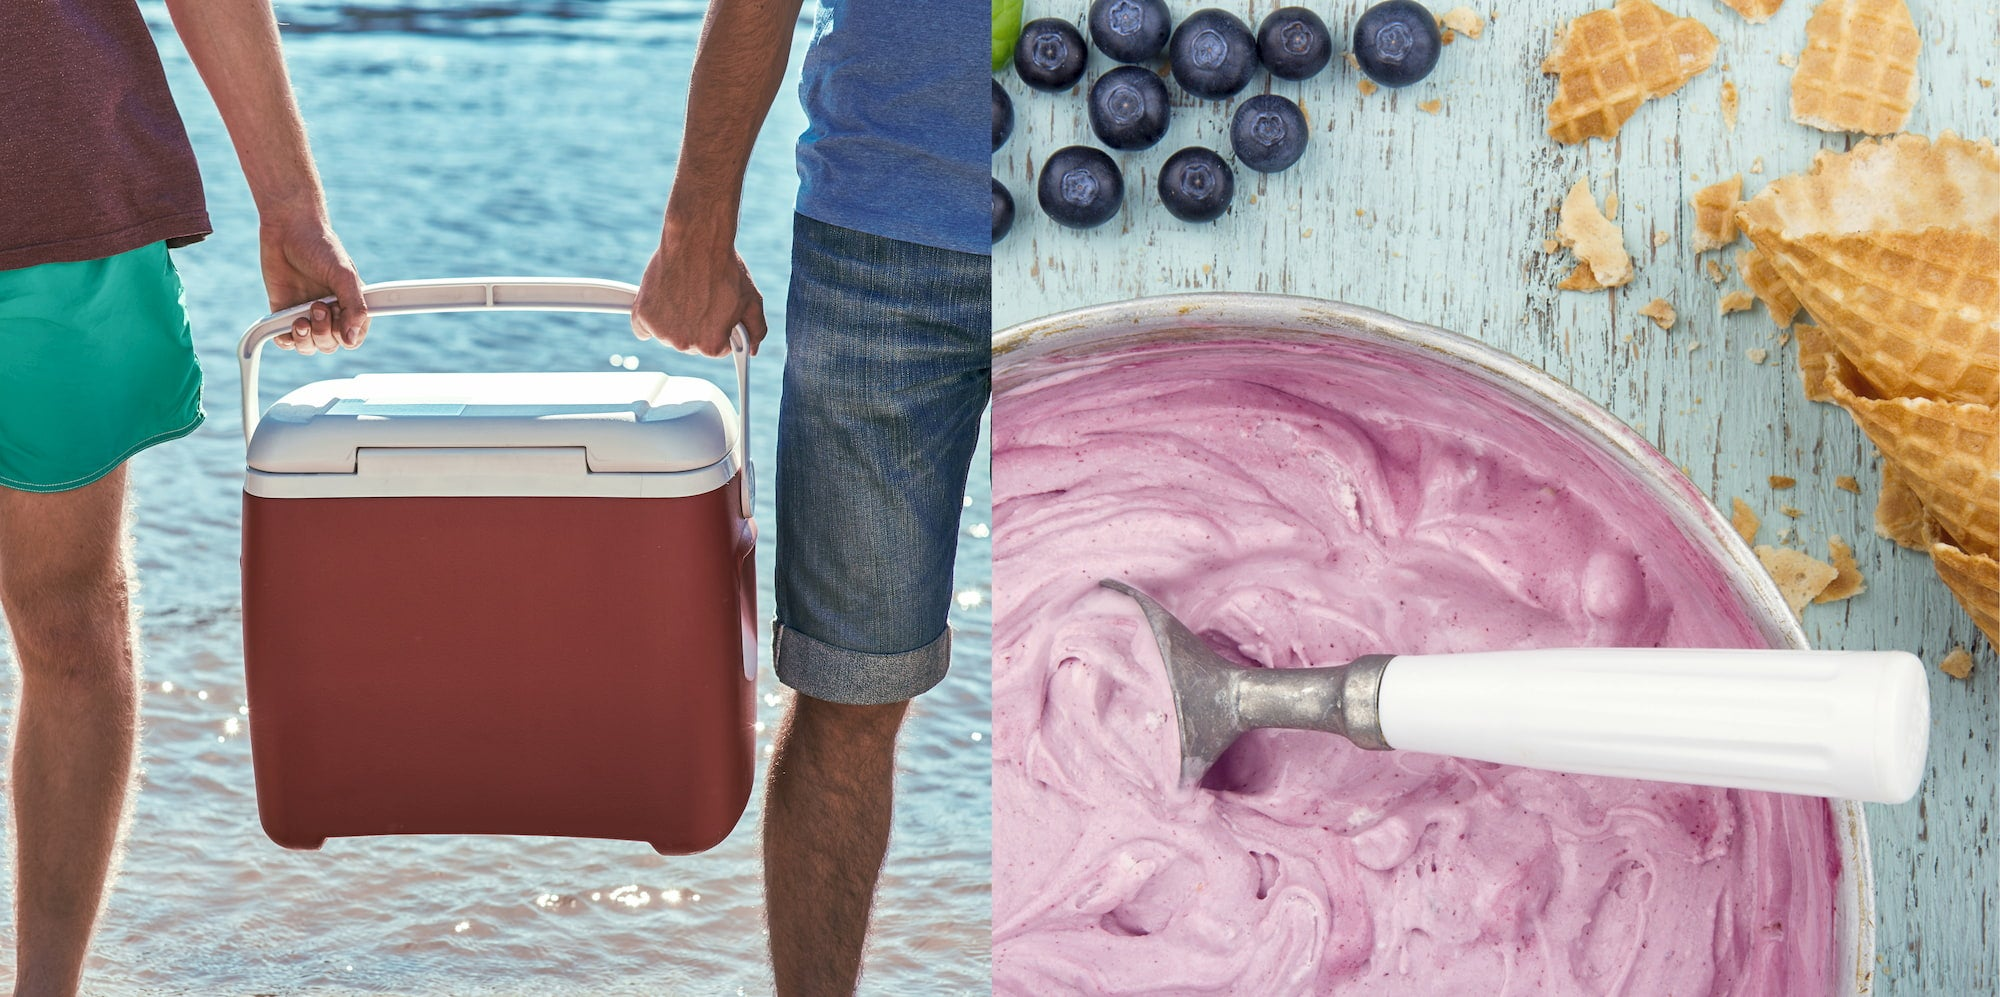 Left: Two people holding a cooler. Right: Homemade blueberry ice cream in a bowl with blueberries and waffle cones.